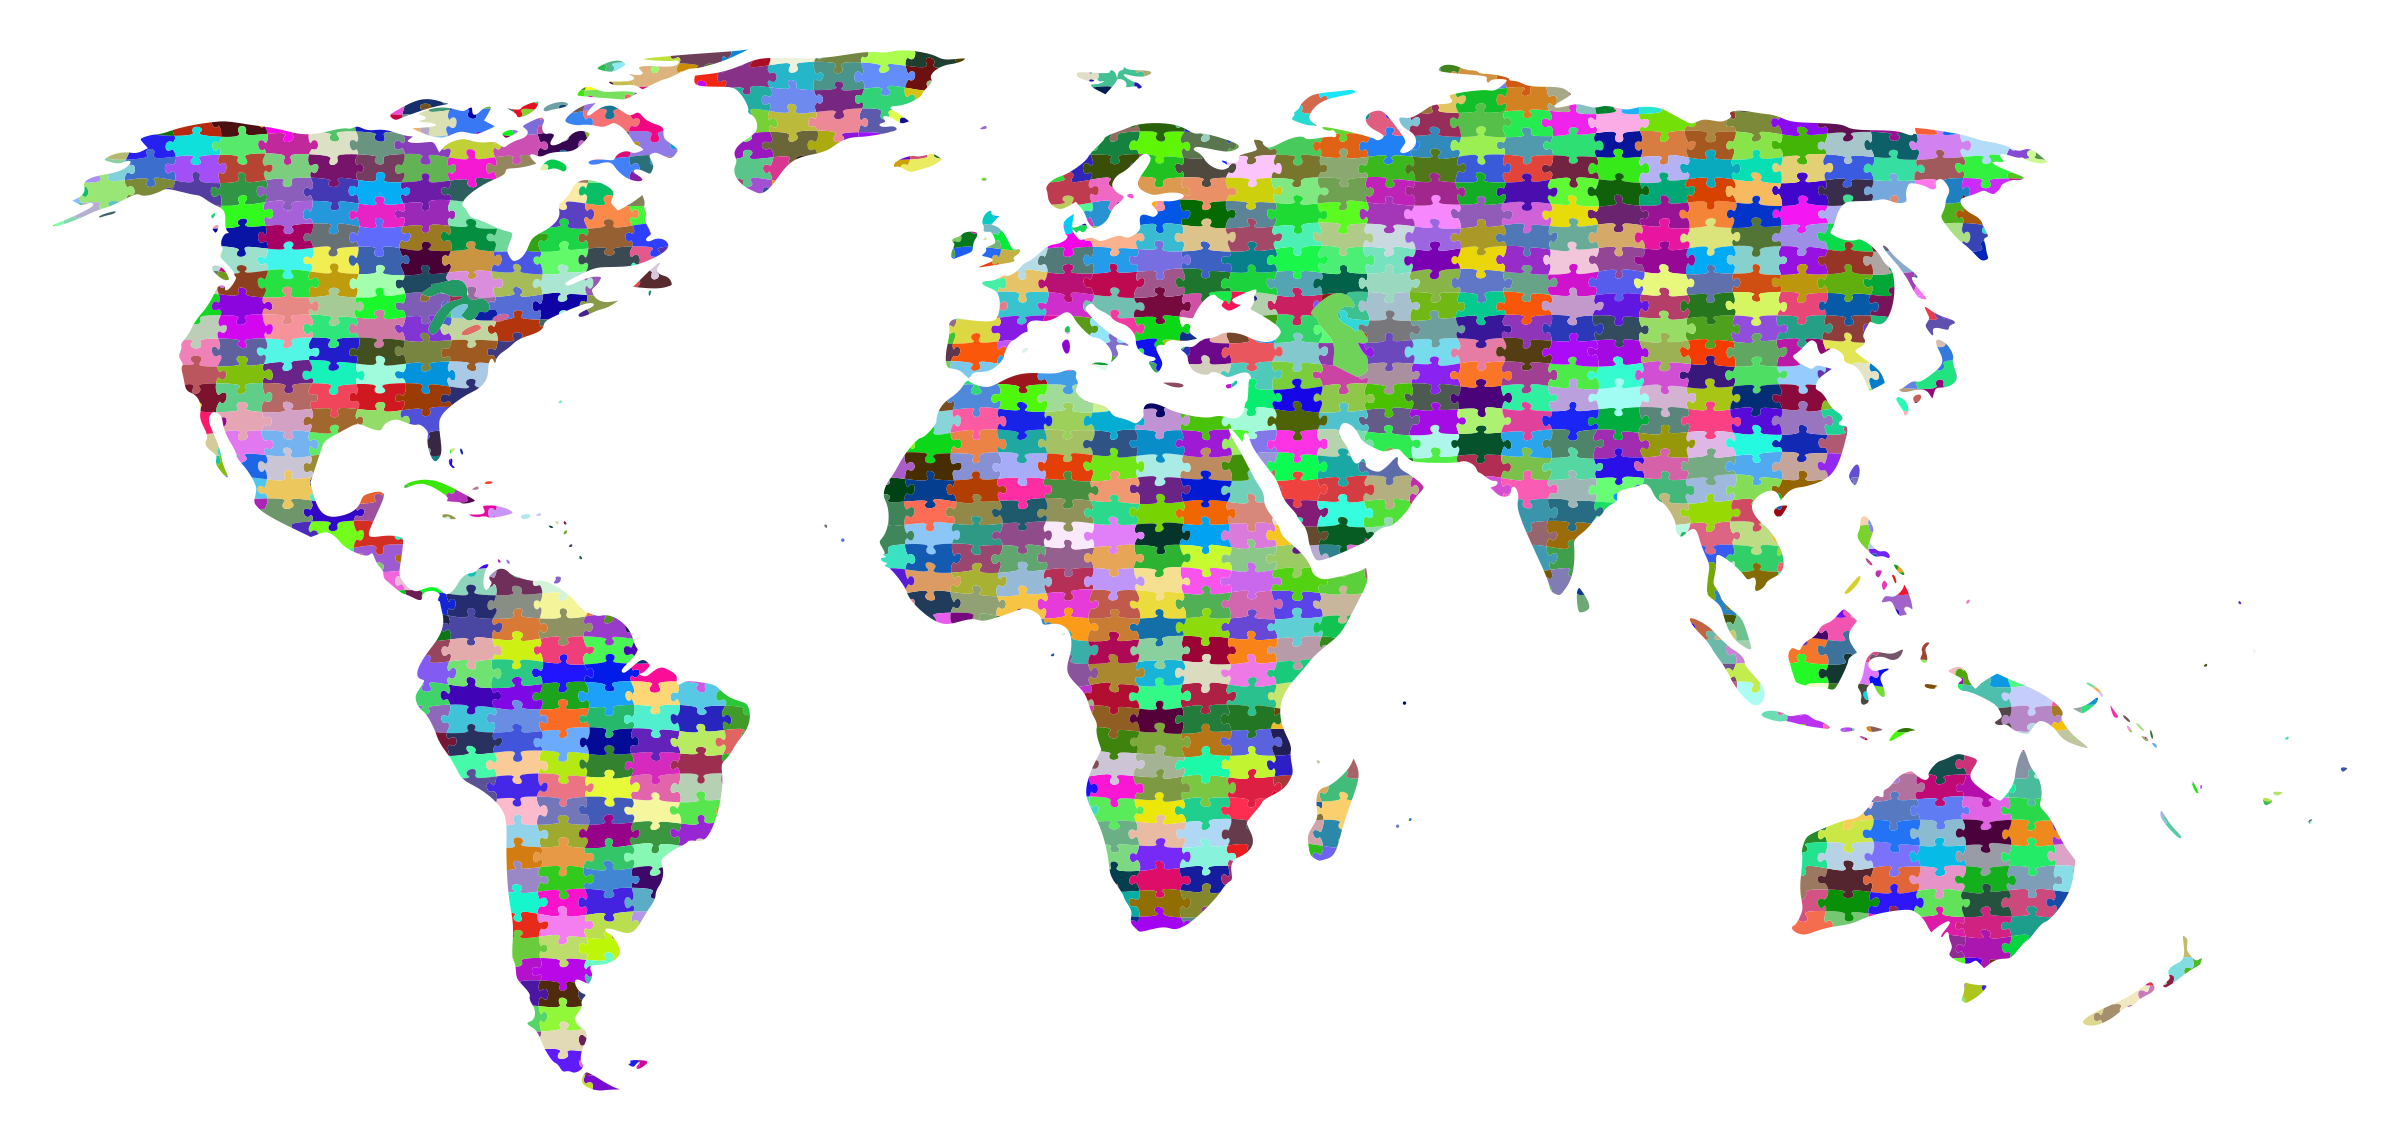 Prismatic jigsaw world map. Earth clipart puzzle